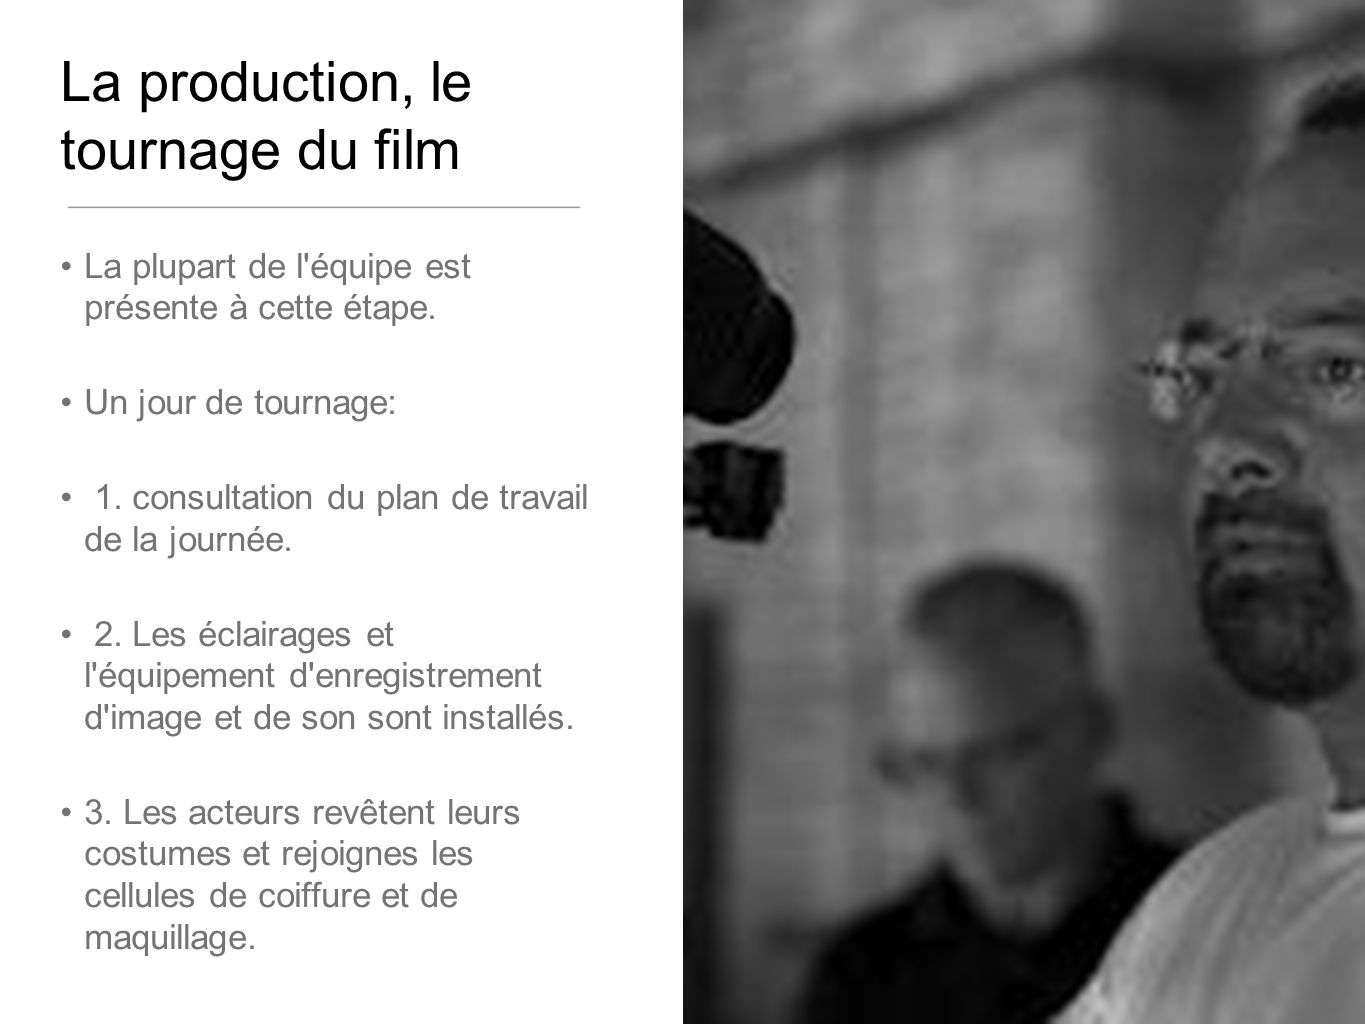 La production, le tournage du film